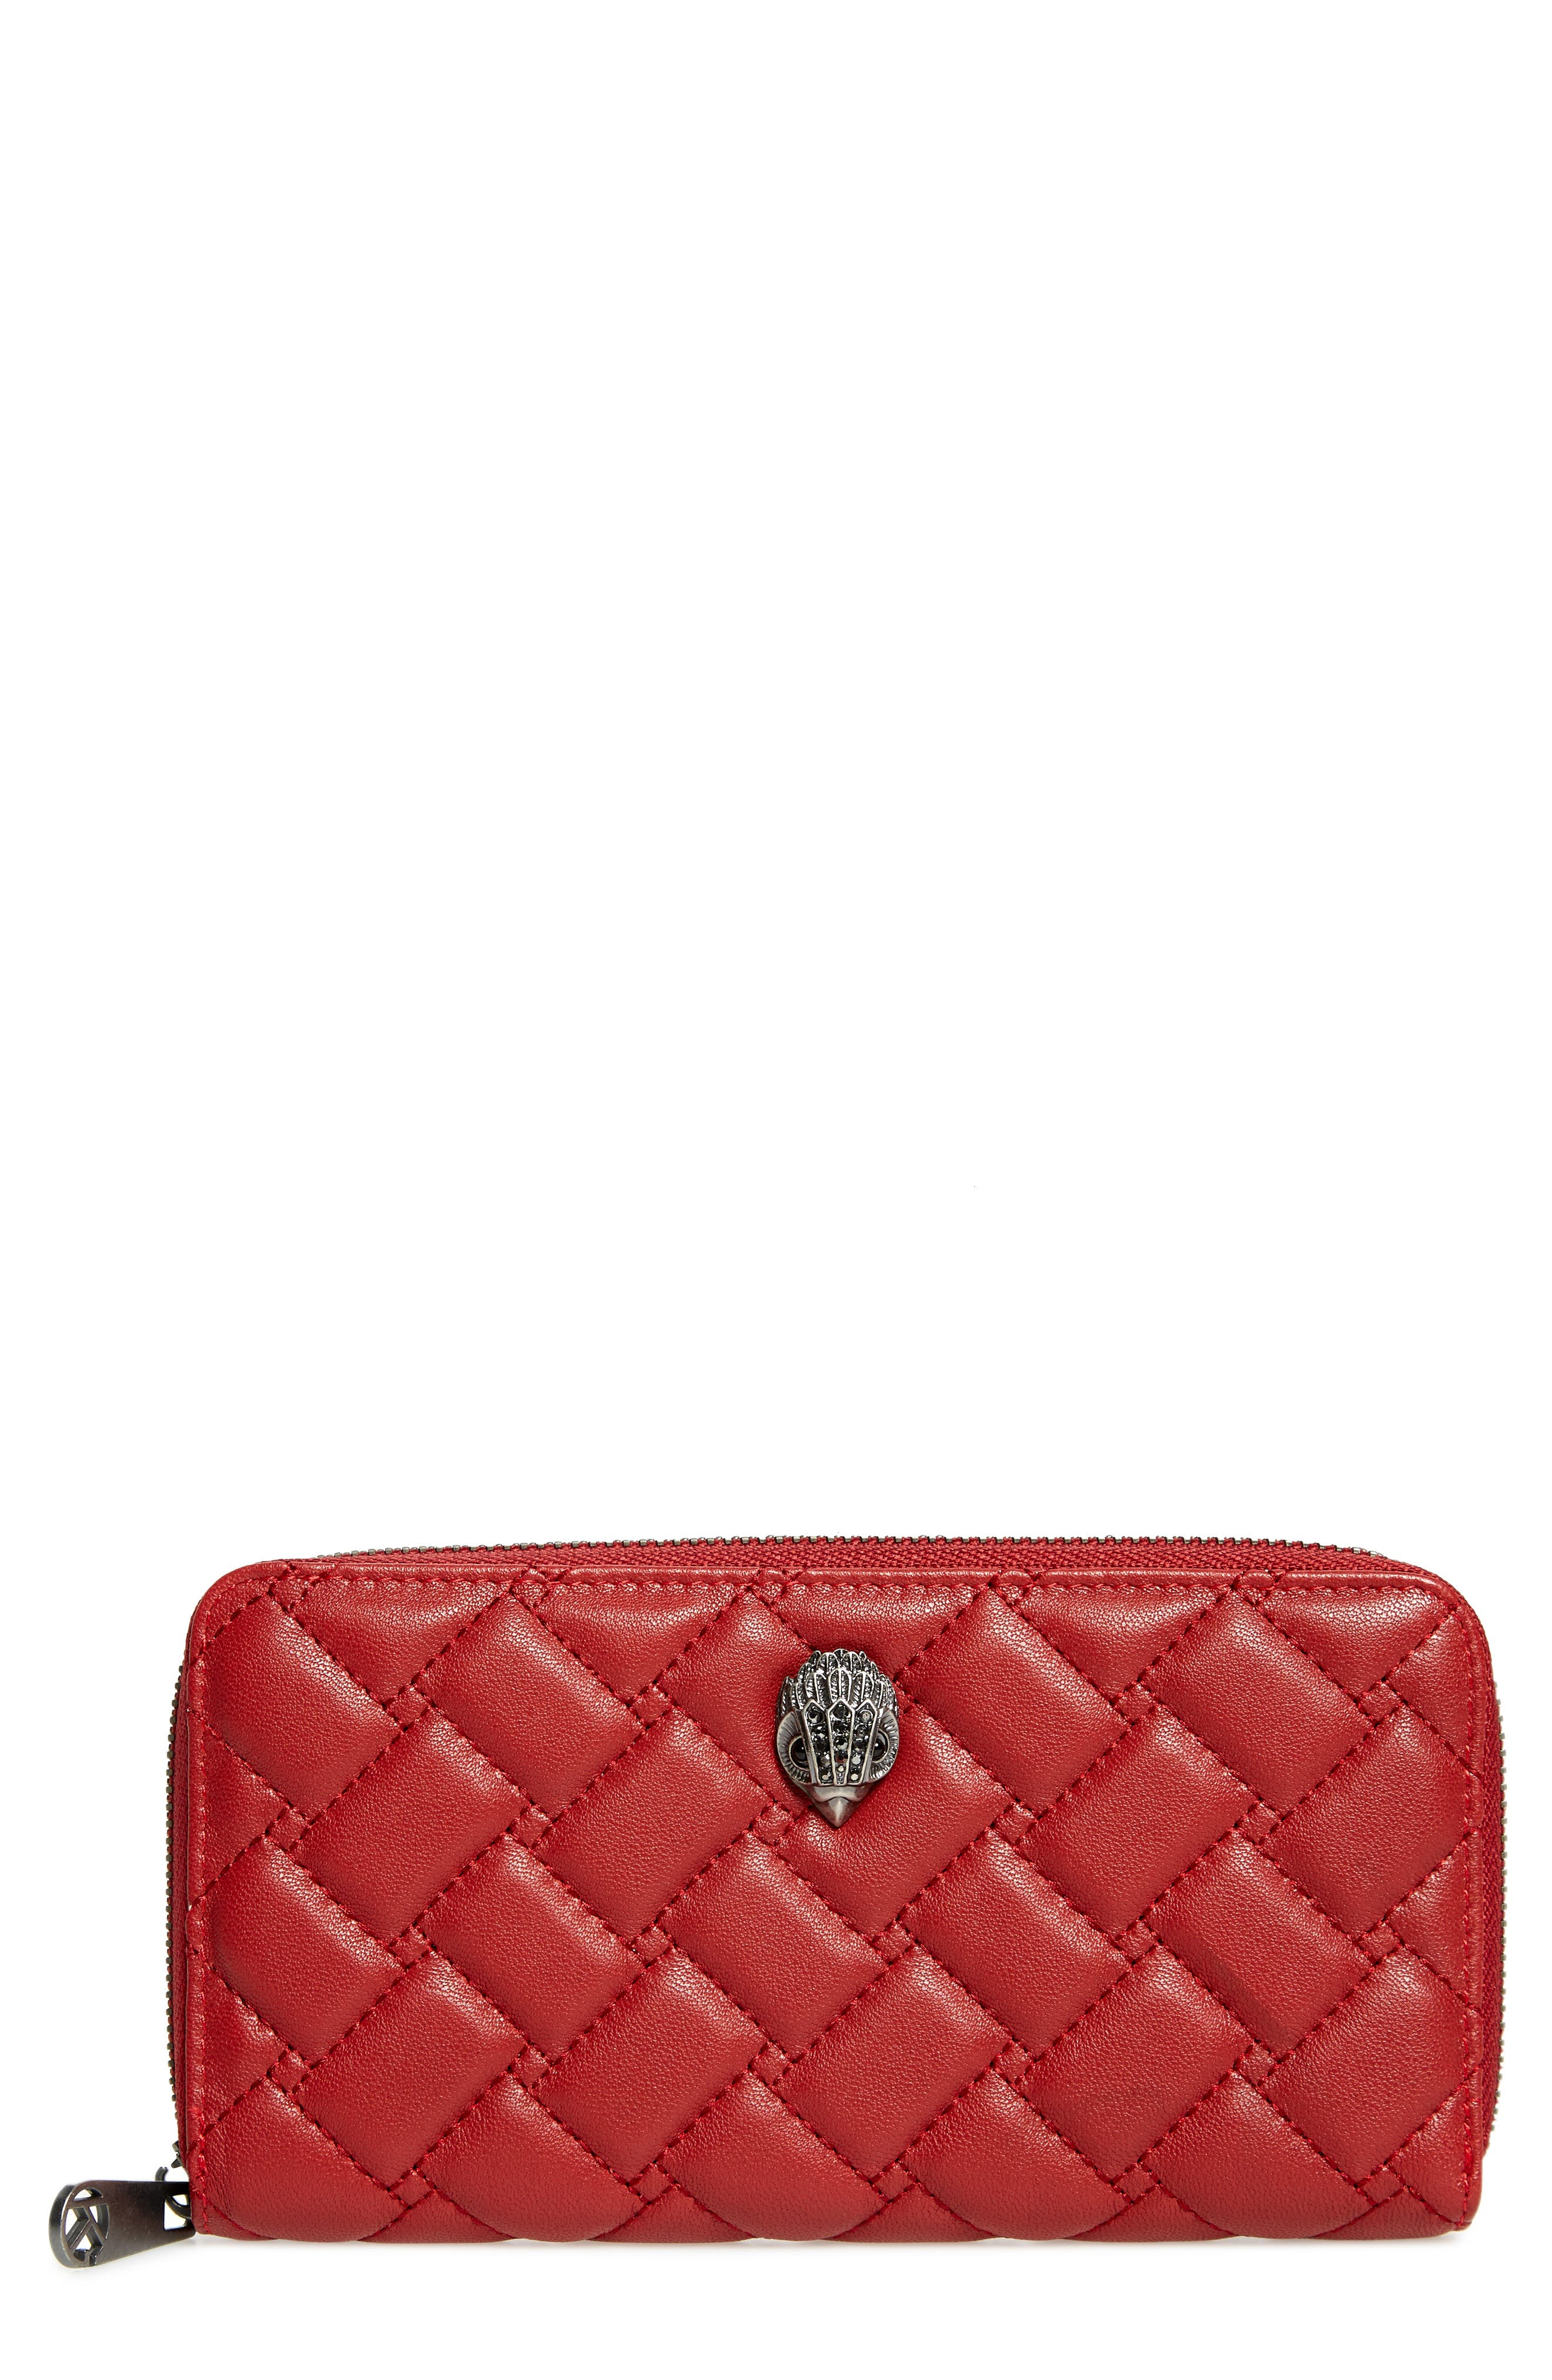 Eagle Leather Zip Around Wallet,                             Main thumbnail 1, color,                             RED